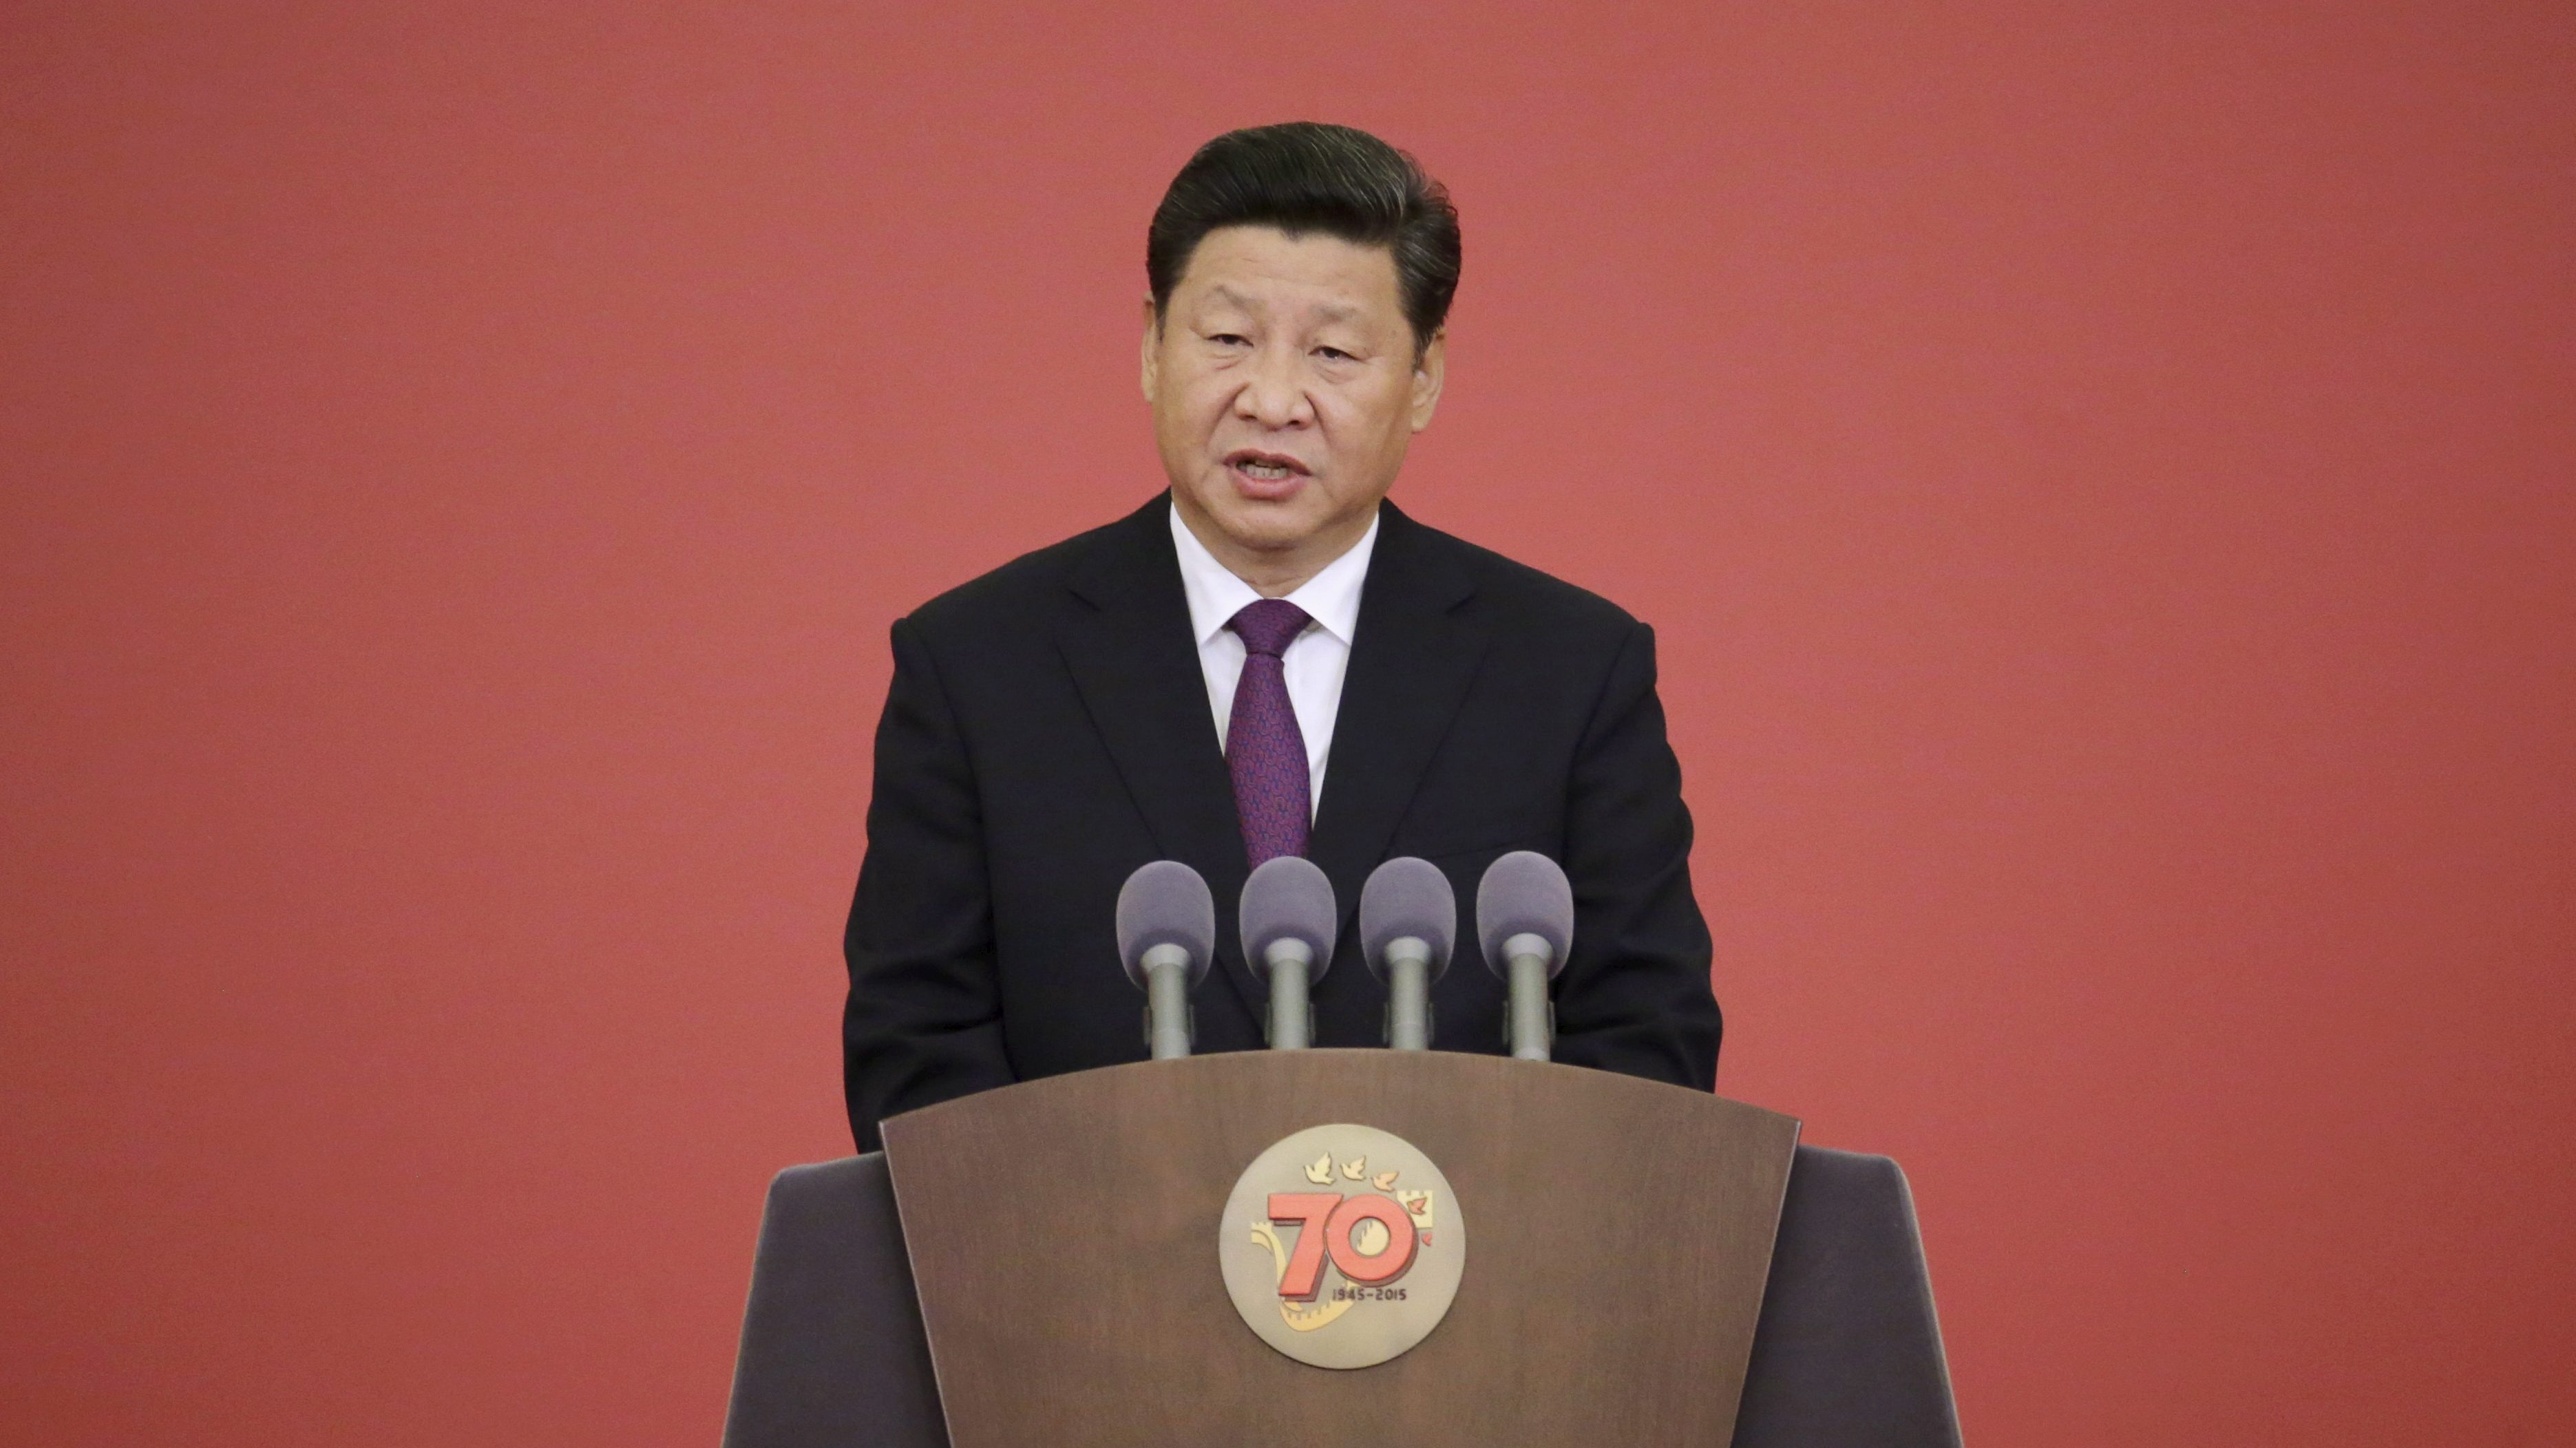 Chinese President Xi Jinping delivers a speech at a ceremony to present commemorative medals of the 70th anniversary of the Victory of Chinese People's War of Resistance Against Japanese Aggression, to World War Two veterans at the Great Hall of the People in Beijing, China, September 2, 2015. A total of 30 veterans, including Chinese soldiers, military officials and foreign friends (or their relatives) who made a contribution to Chinese victory, were awarded medals by the Chinese president on Wednesday, Xinhua News Agency reported.